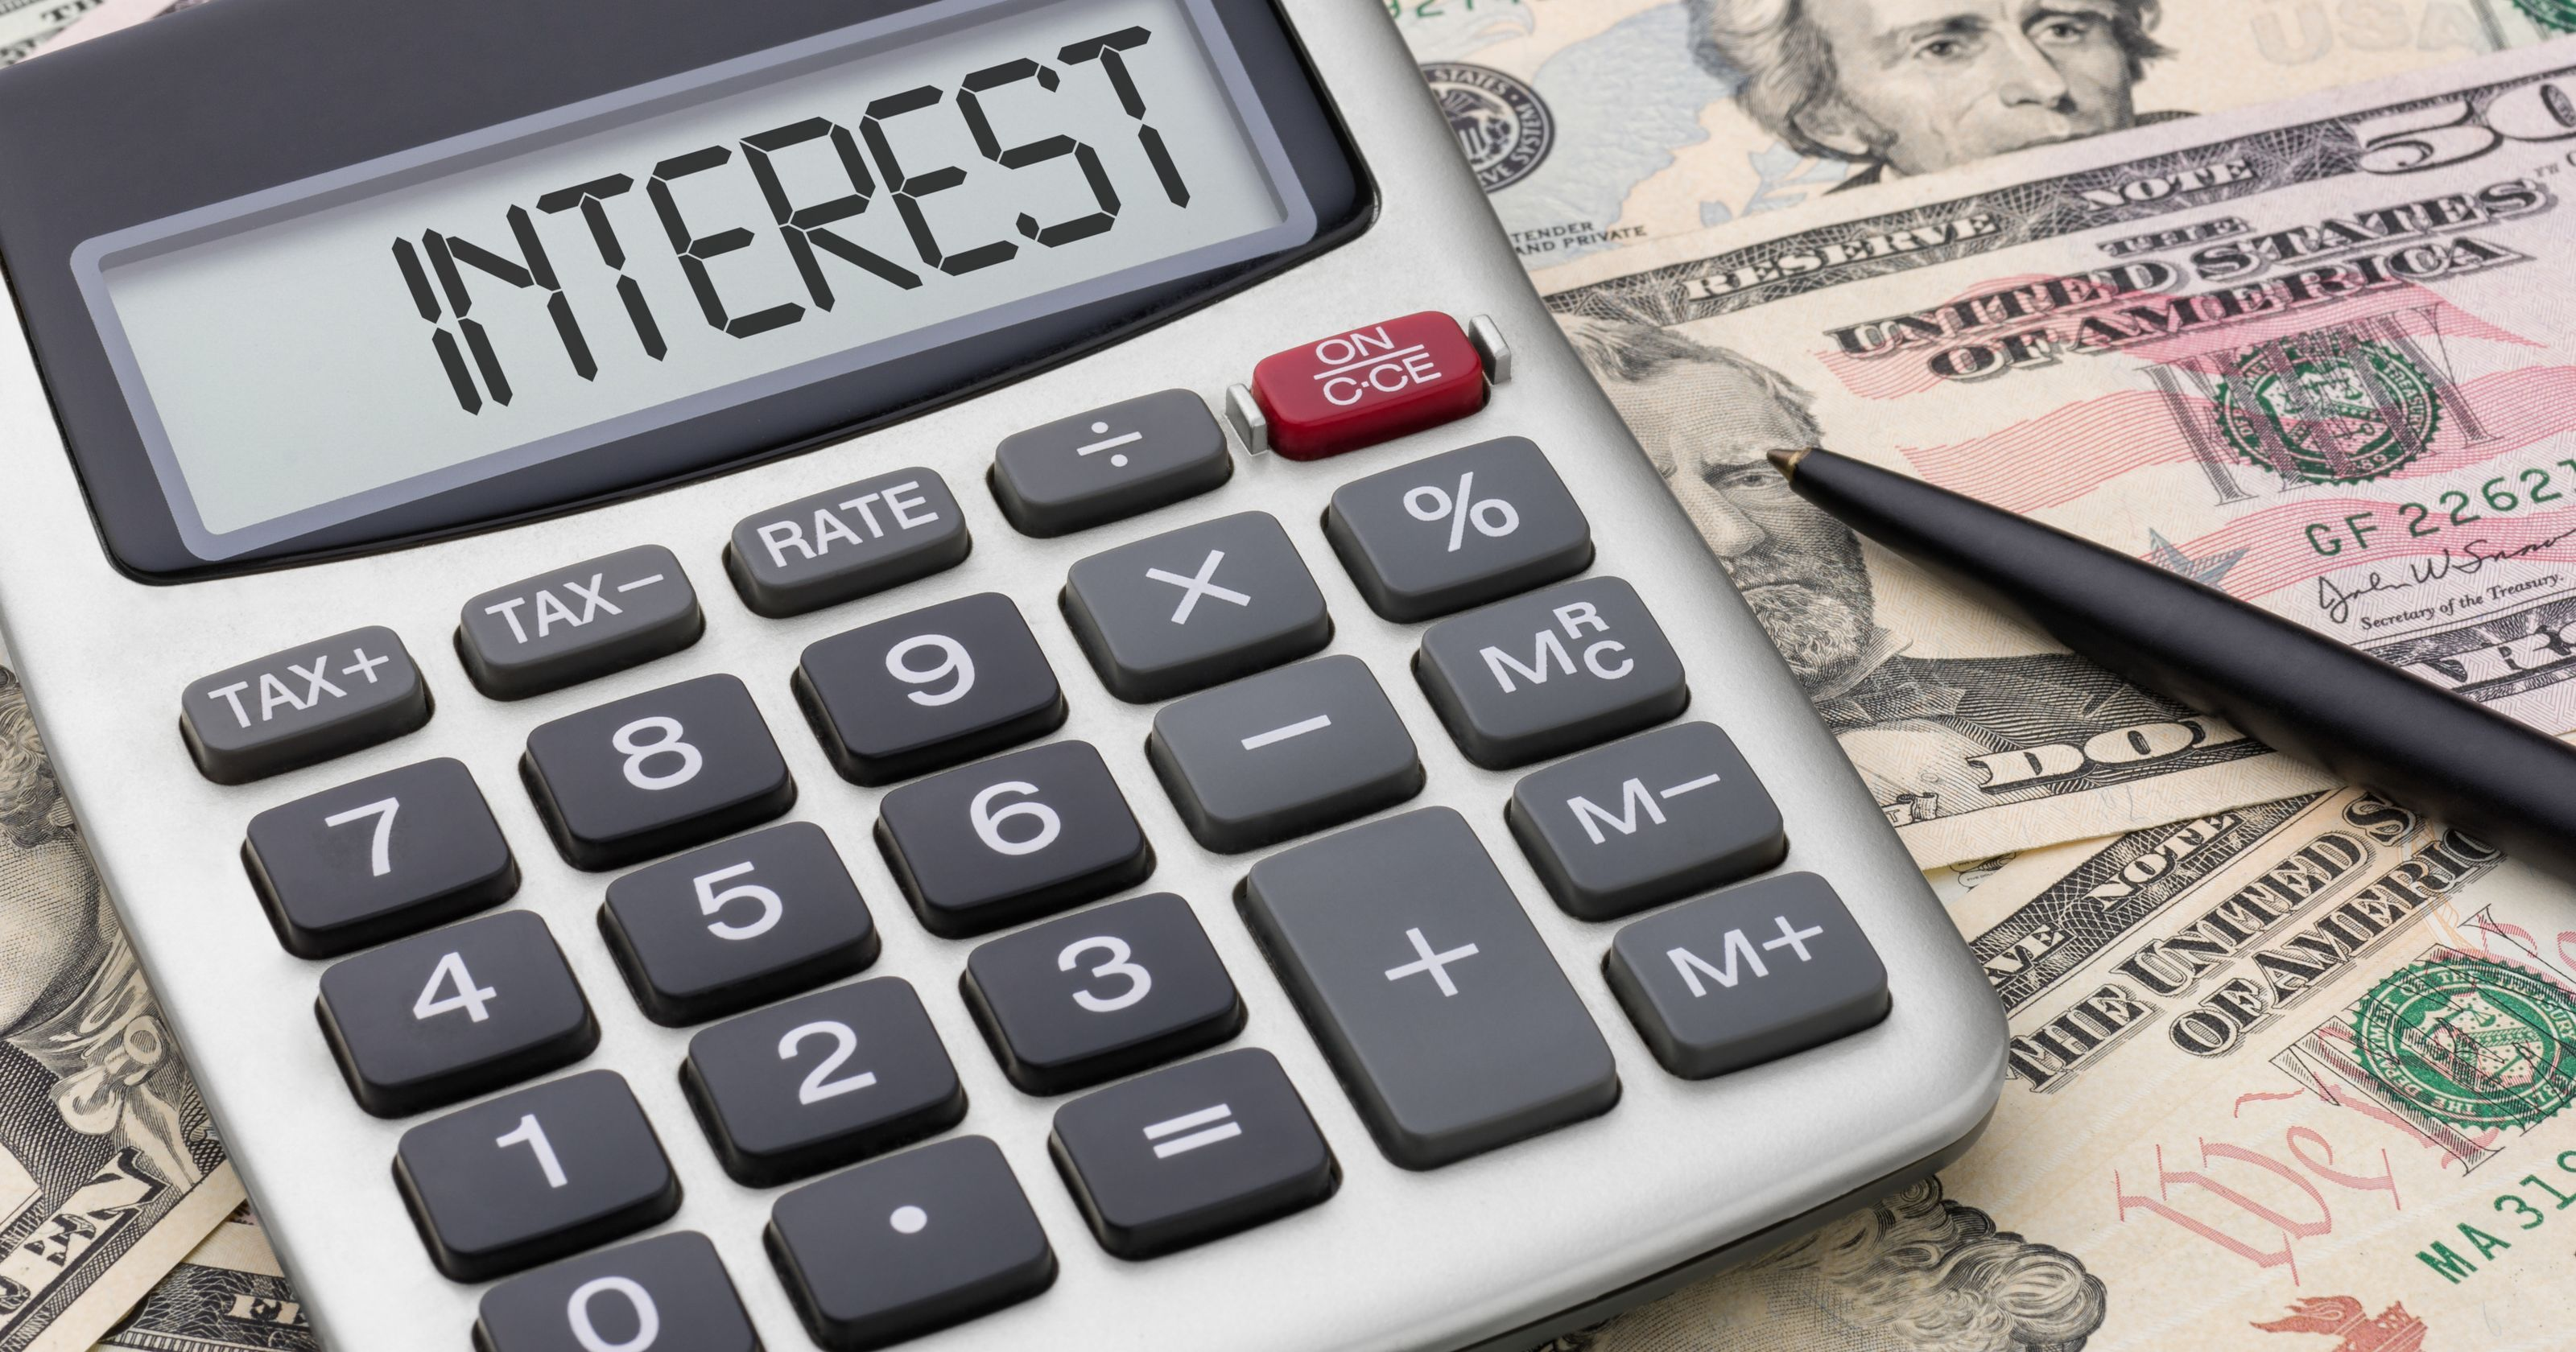 Beware Those Fintech Small Business Loans Can Cost You